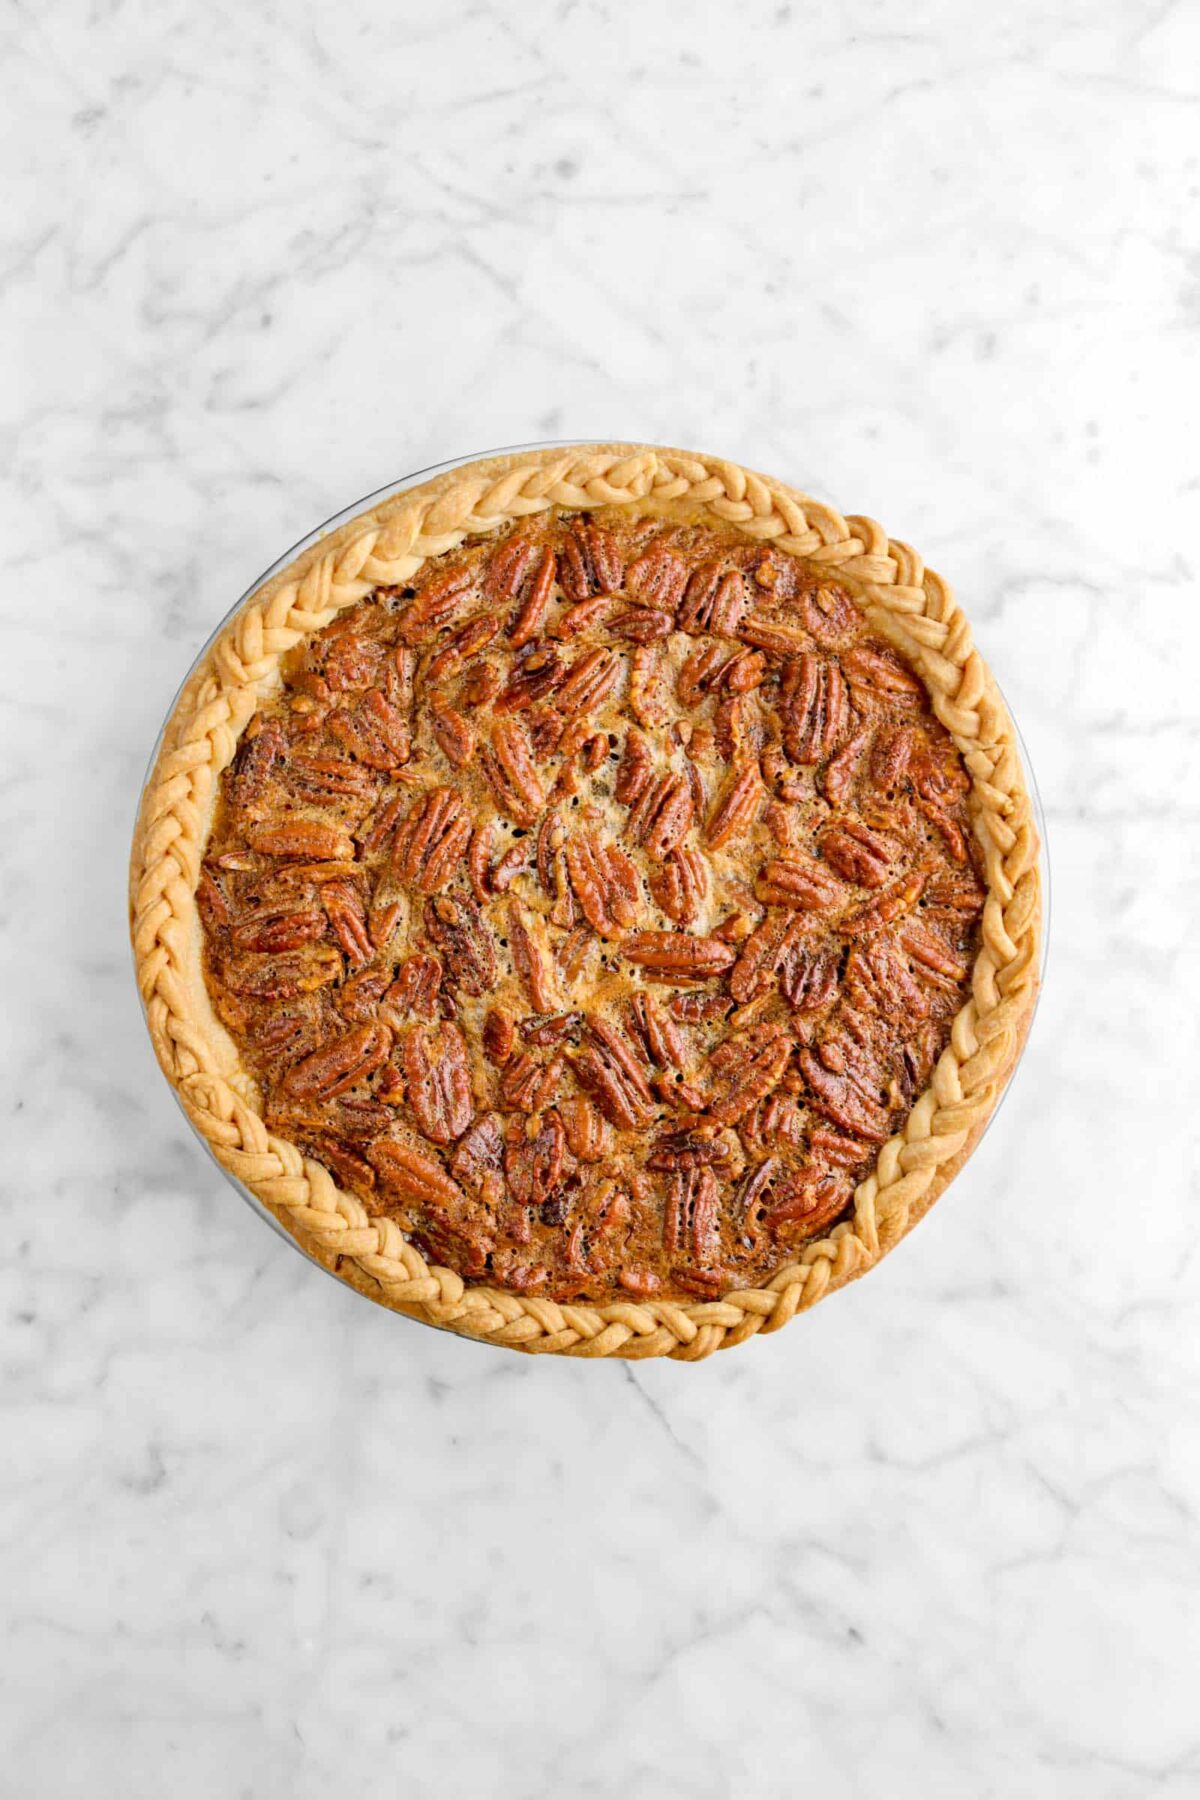 baked pecan pie on marble counter